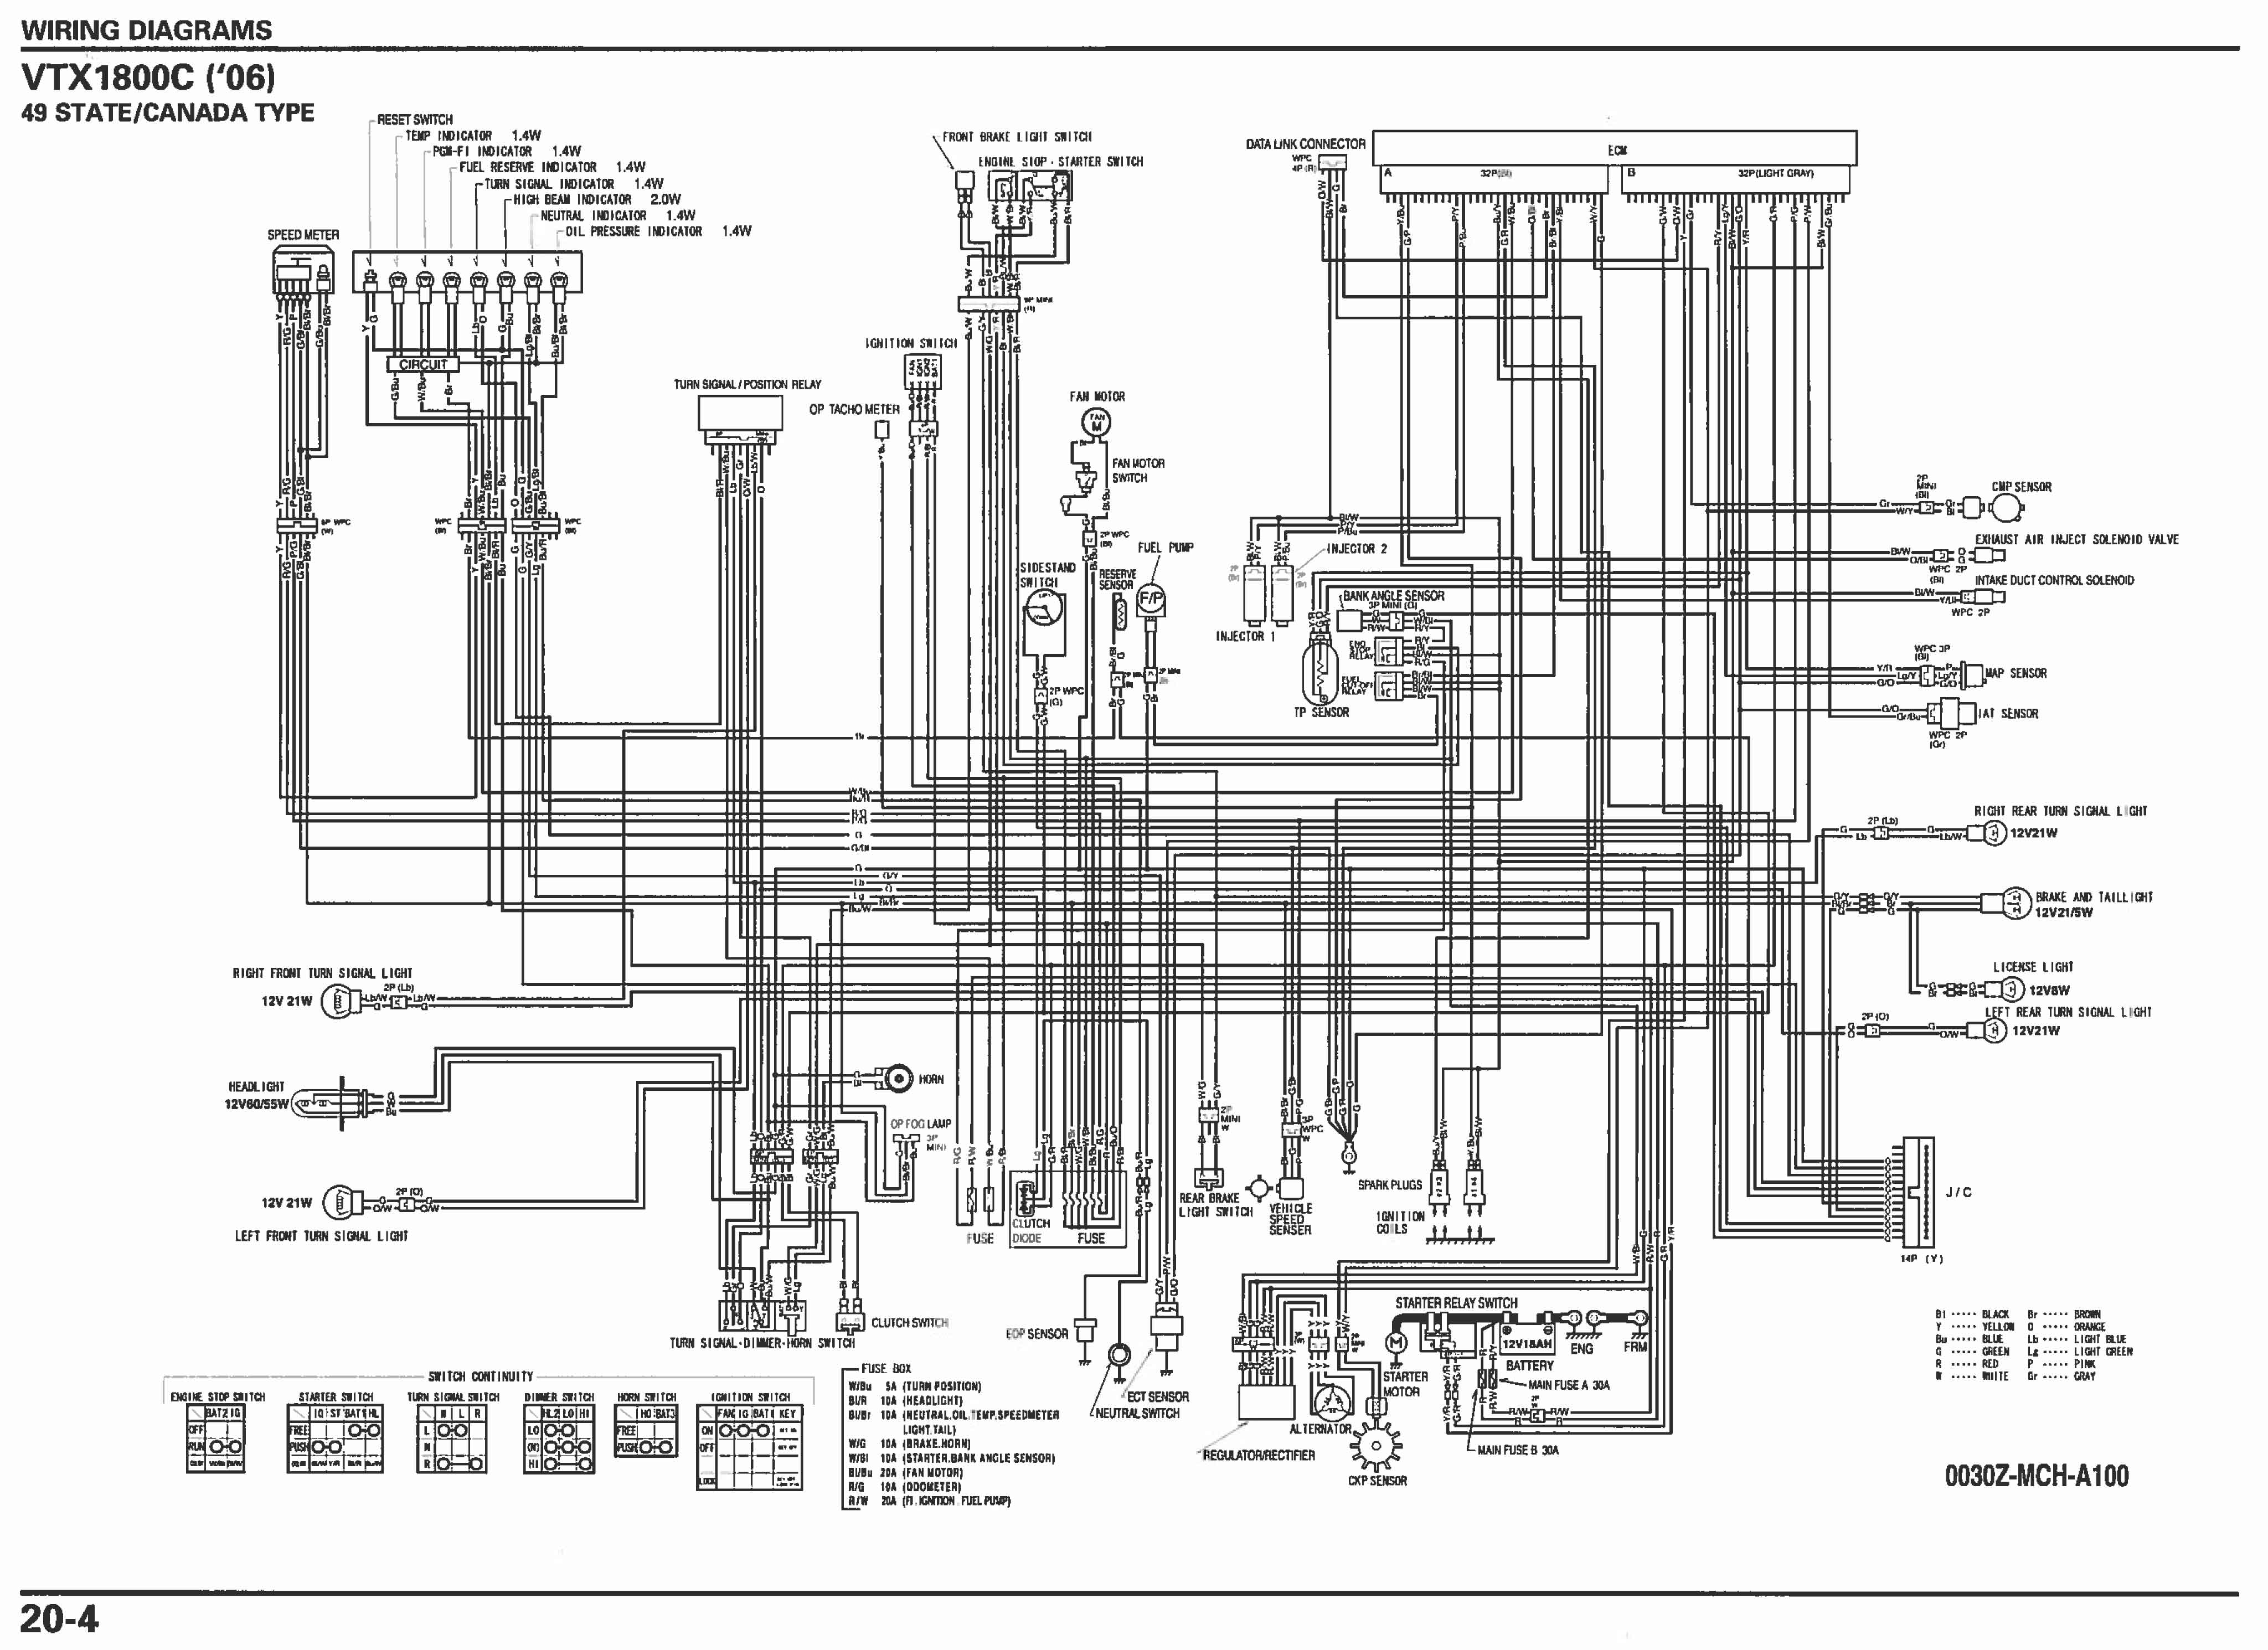 vtx 1300 wiring diagram vtx image wiring diagram motorcycle wire schematics bareass choppers motorcycle tech pages